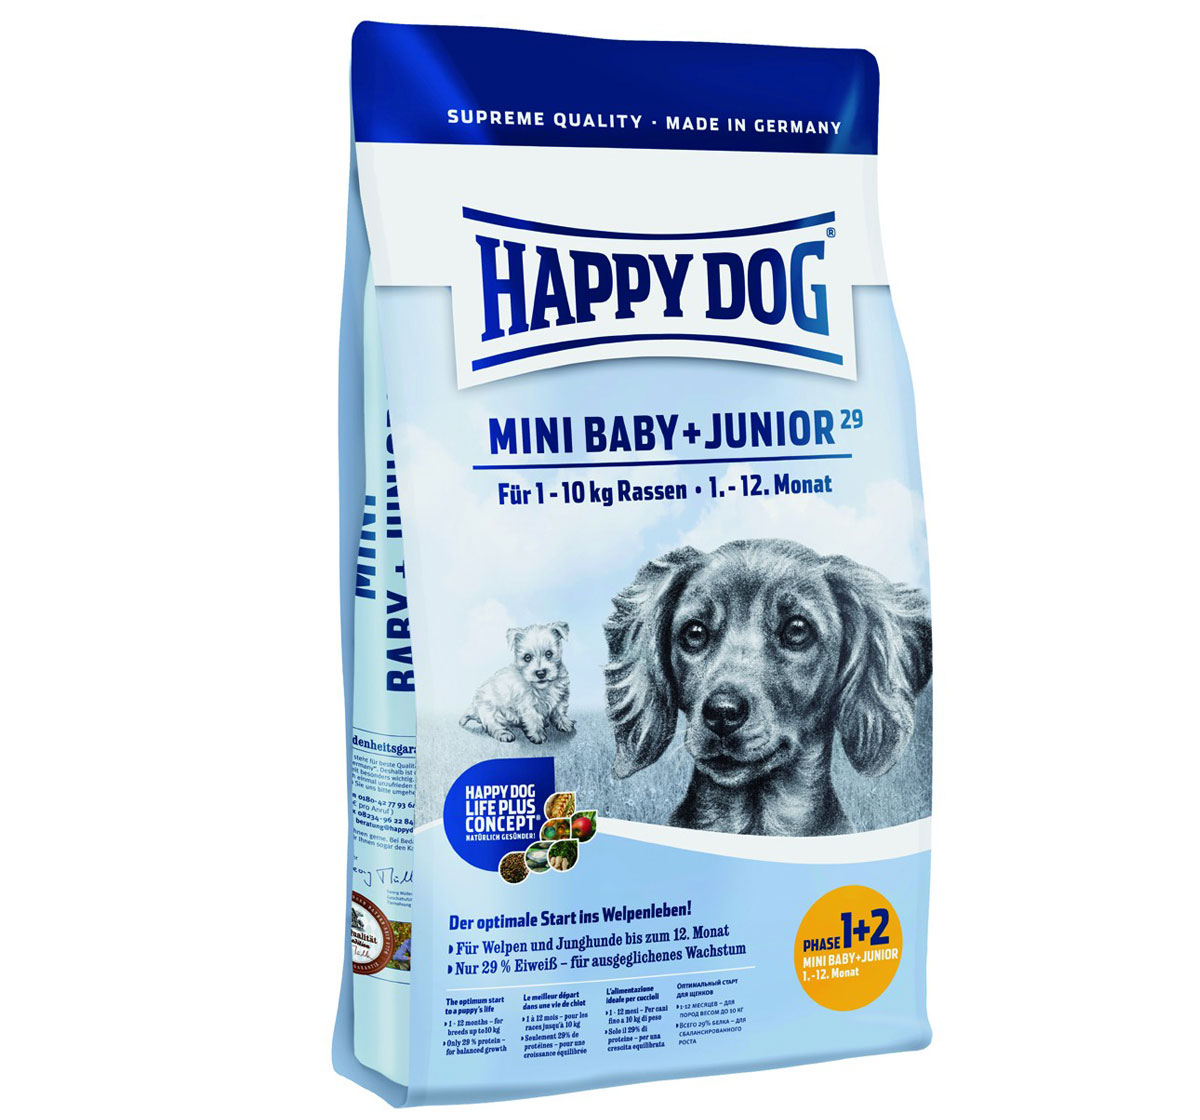 happy dog mini breed baby and junior dog food 1 kg dogspot online pet supply store. Black Bedroom Furniture Sets. Home Design Ideas